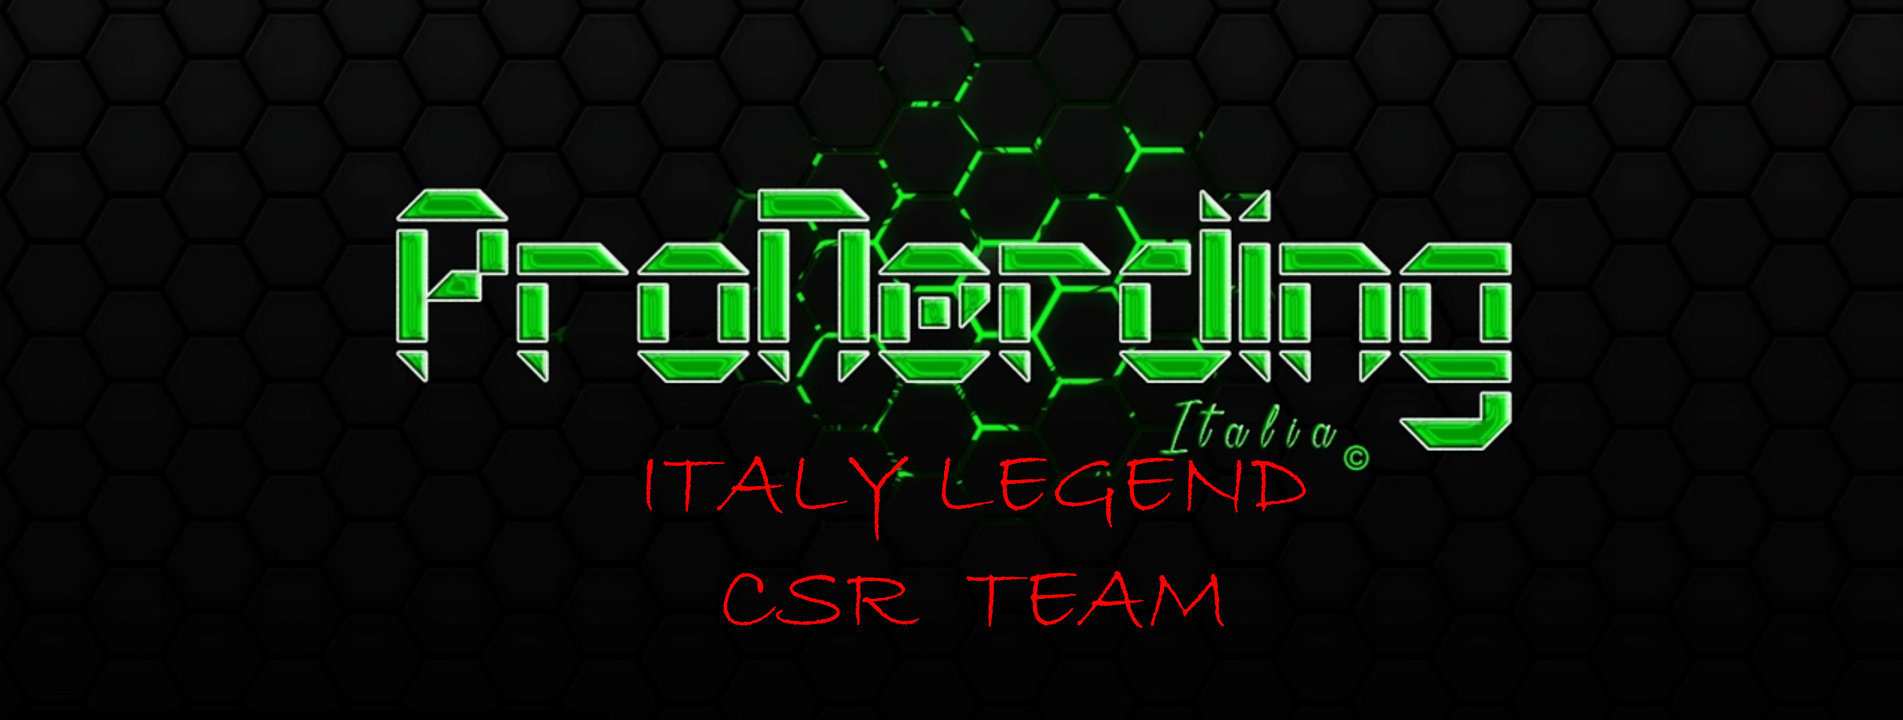 MODULO ITALY LEGEND CSR TEAM